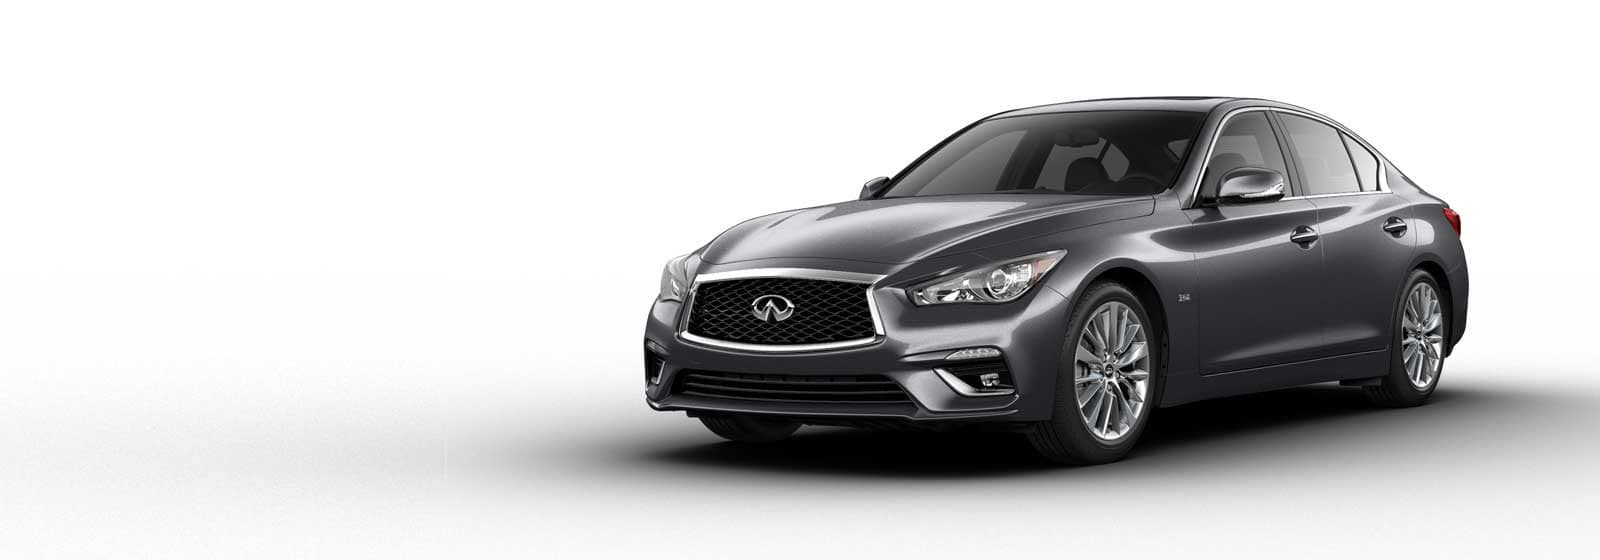 Infiniti Cars For Sale >> Infiniti Dealership Charleston Sc Mount Pleasant Summerville